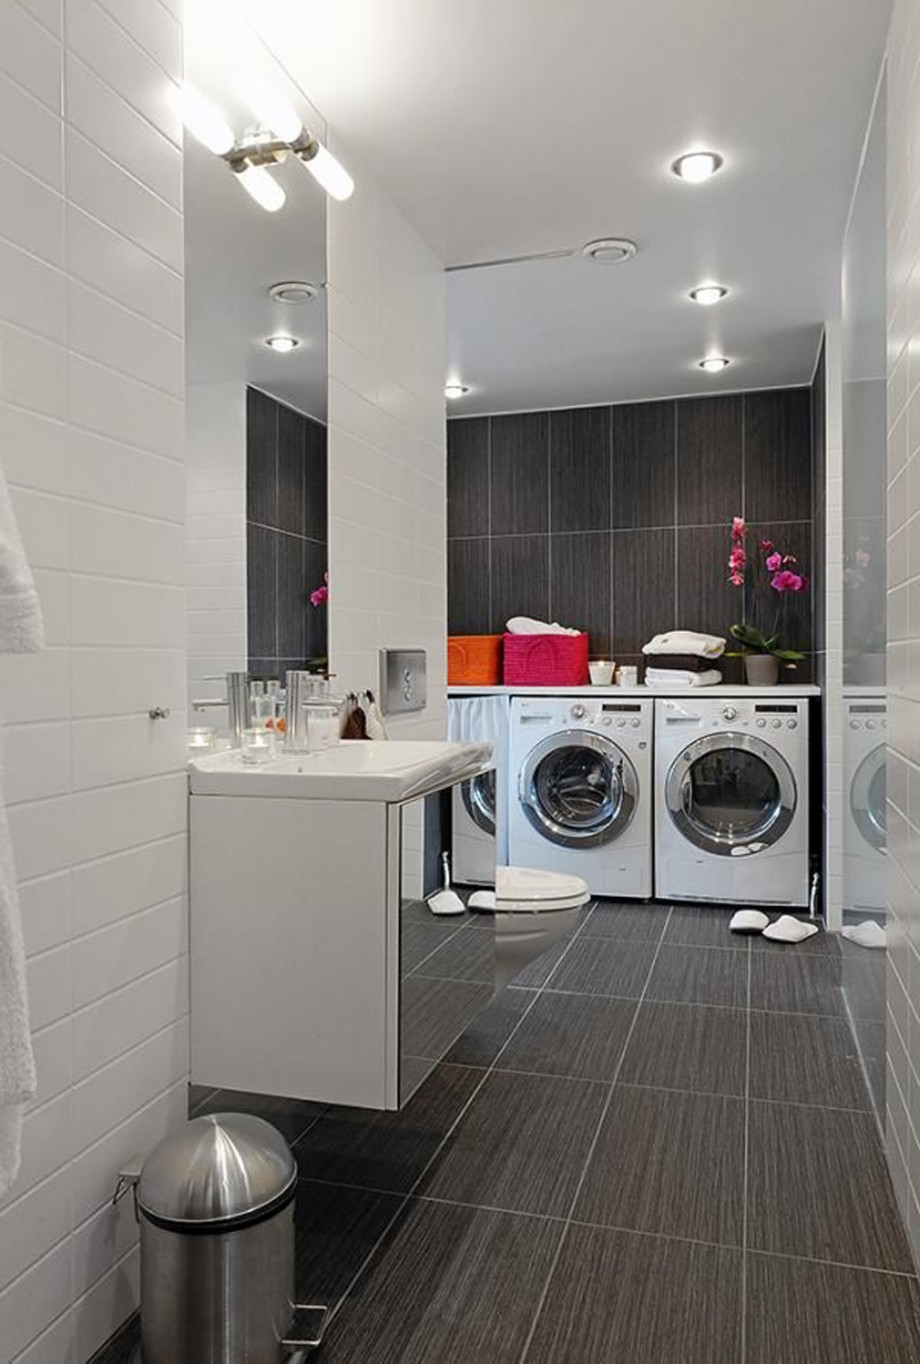 Integrated bathroom laundry room decor - Decorating laundry room ideas ...